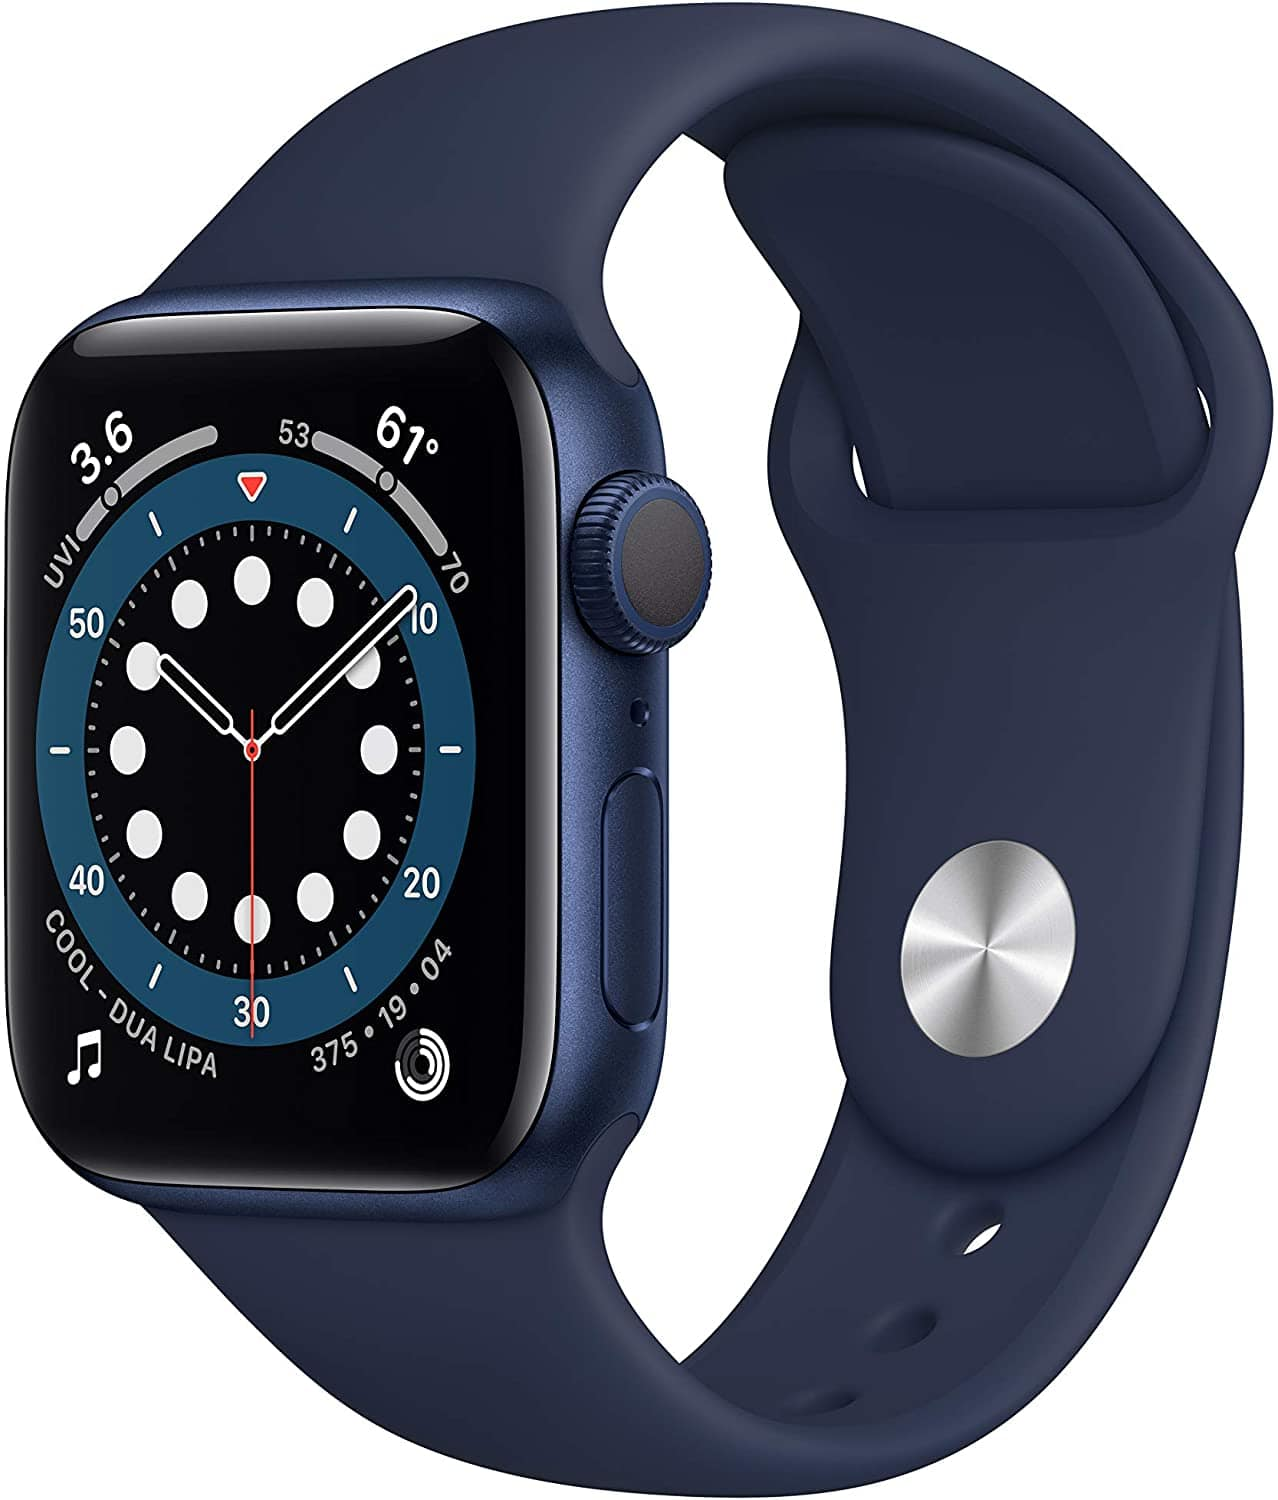 New Apple Watch Series 6 (GPS, 40mm) - Blue Aluminum  for $379  ($399)  @ amazon